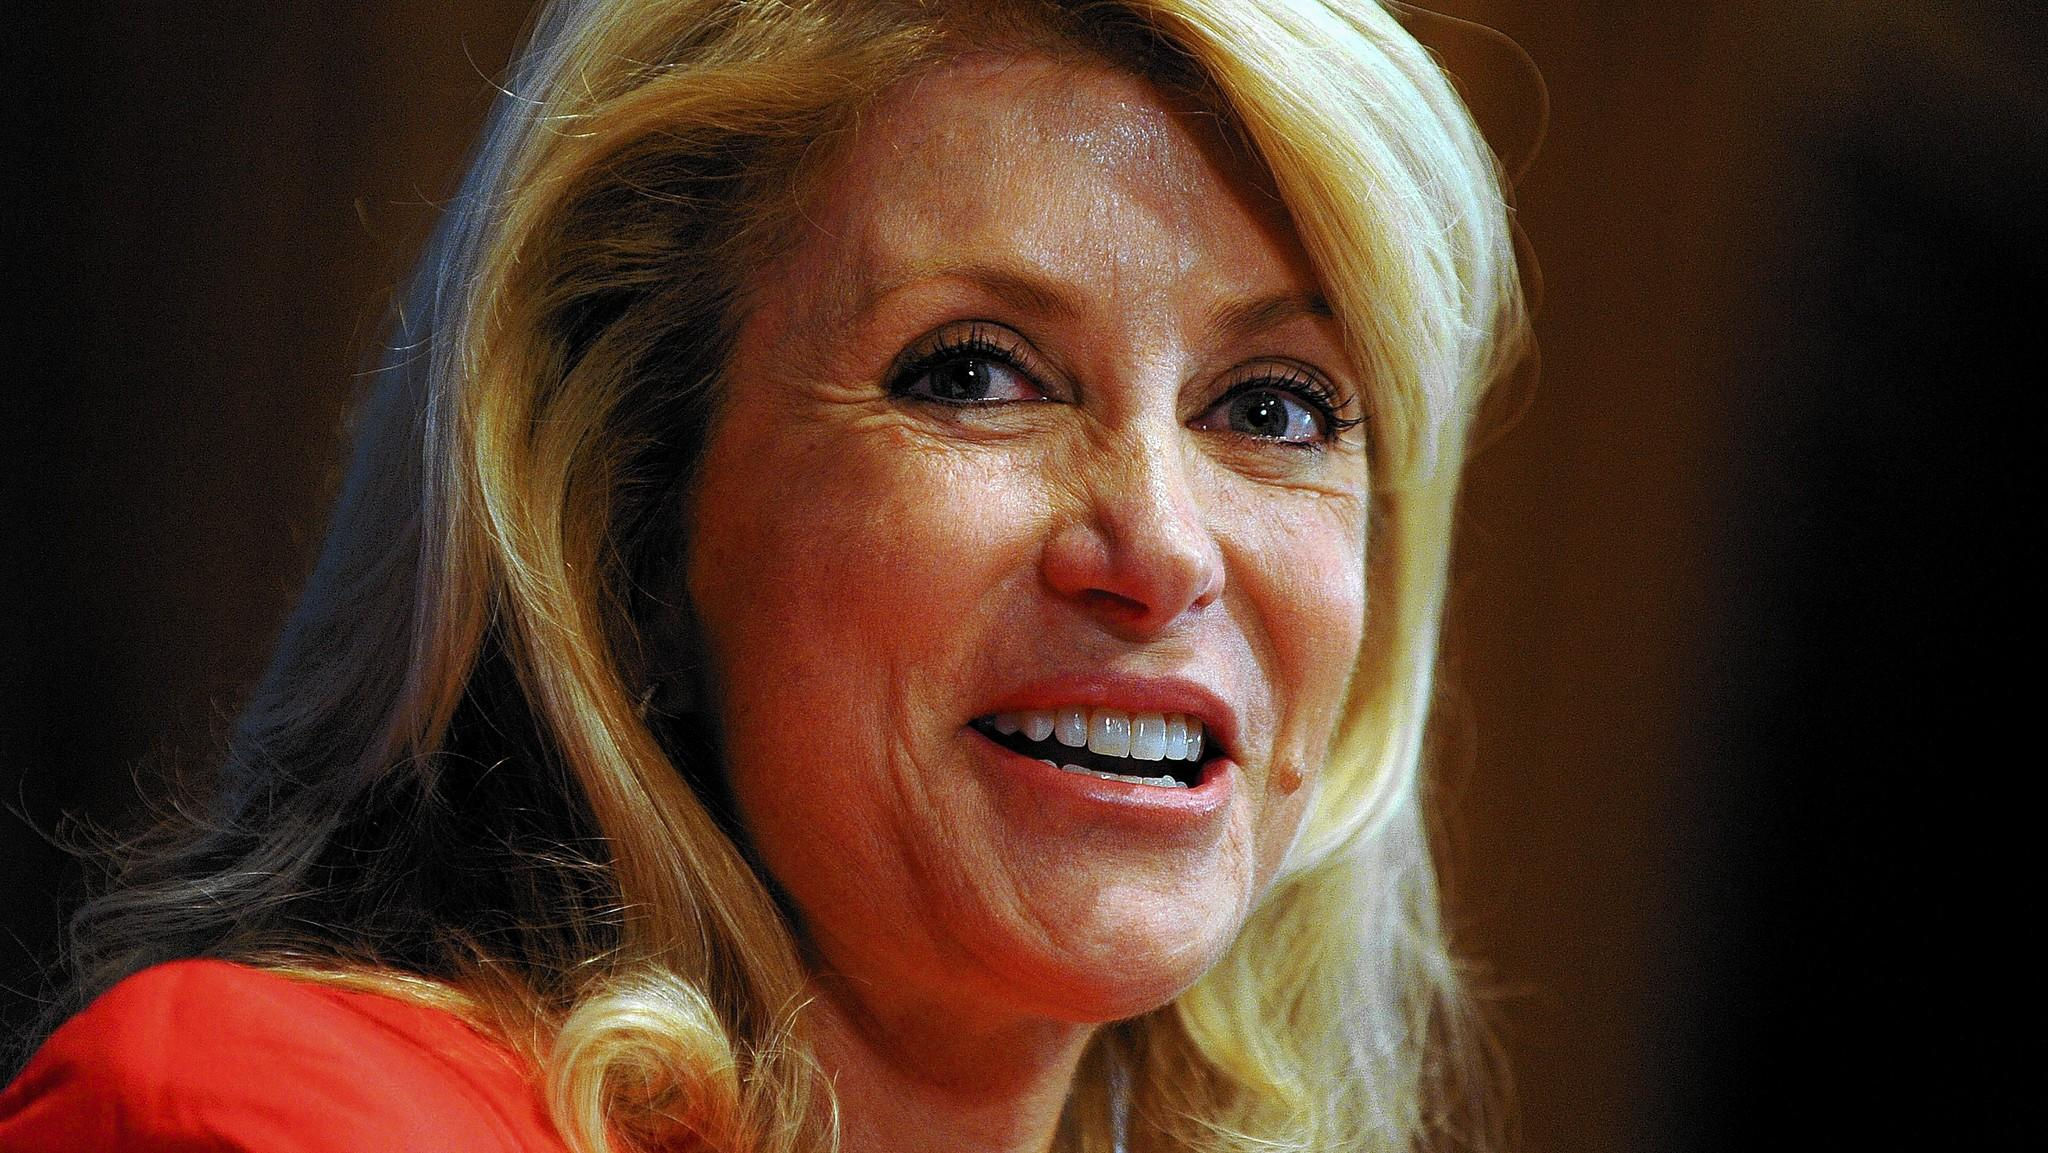 Democrat Wendy Davis, who is running for governor in Texas, is taking some heat about her recollection of some of the events in her life.